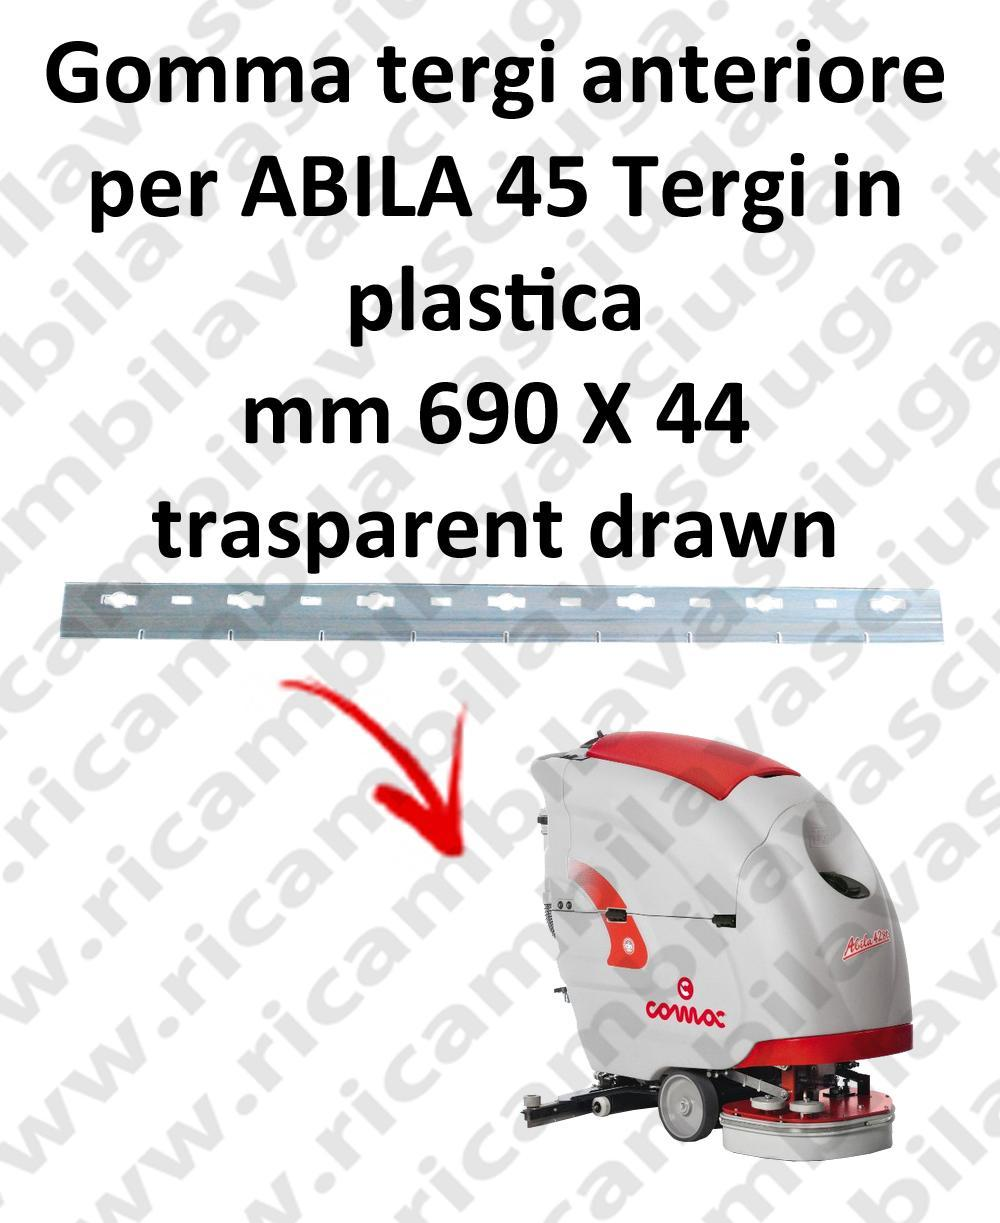 ABILA 45 Front Squeegee rubber for COMAC accessories, reaplacement, spare parts,o scrubber dryer squeegee